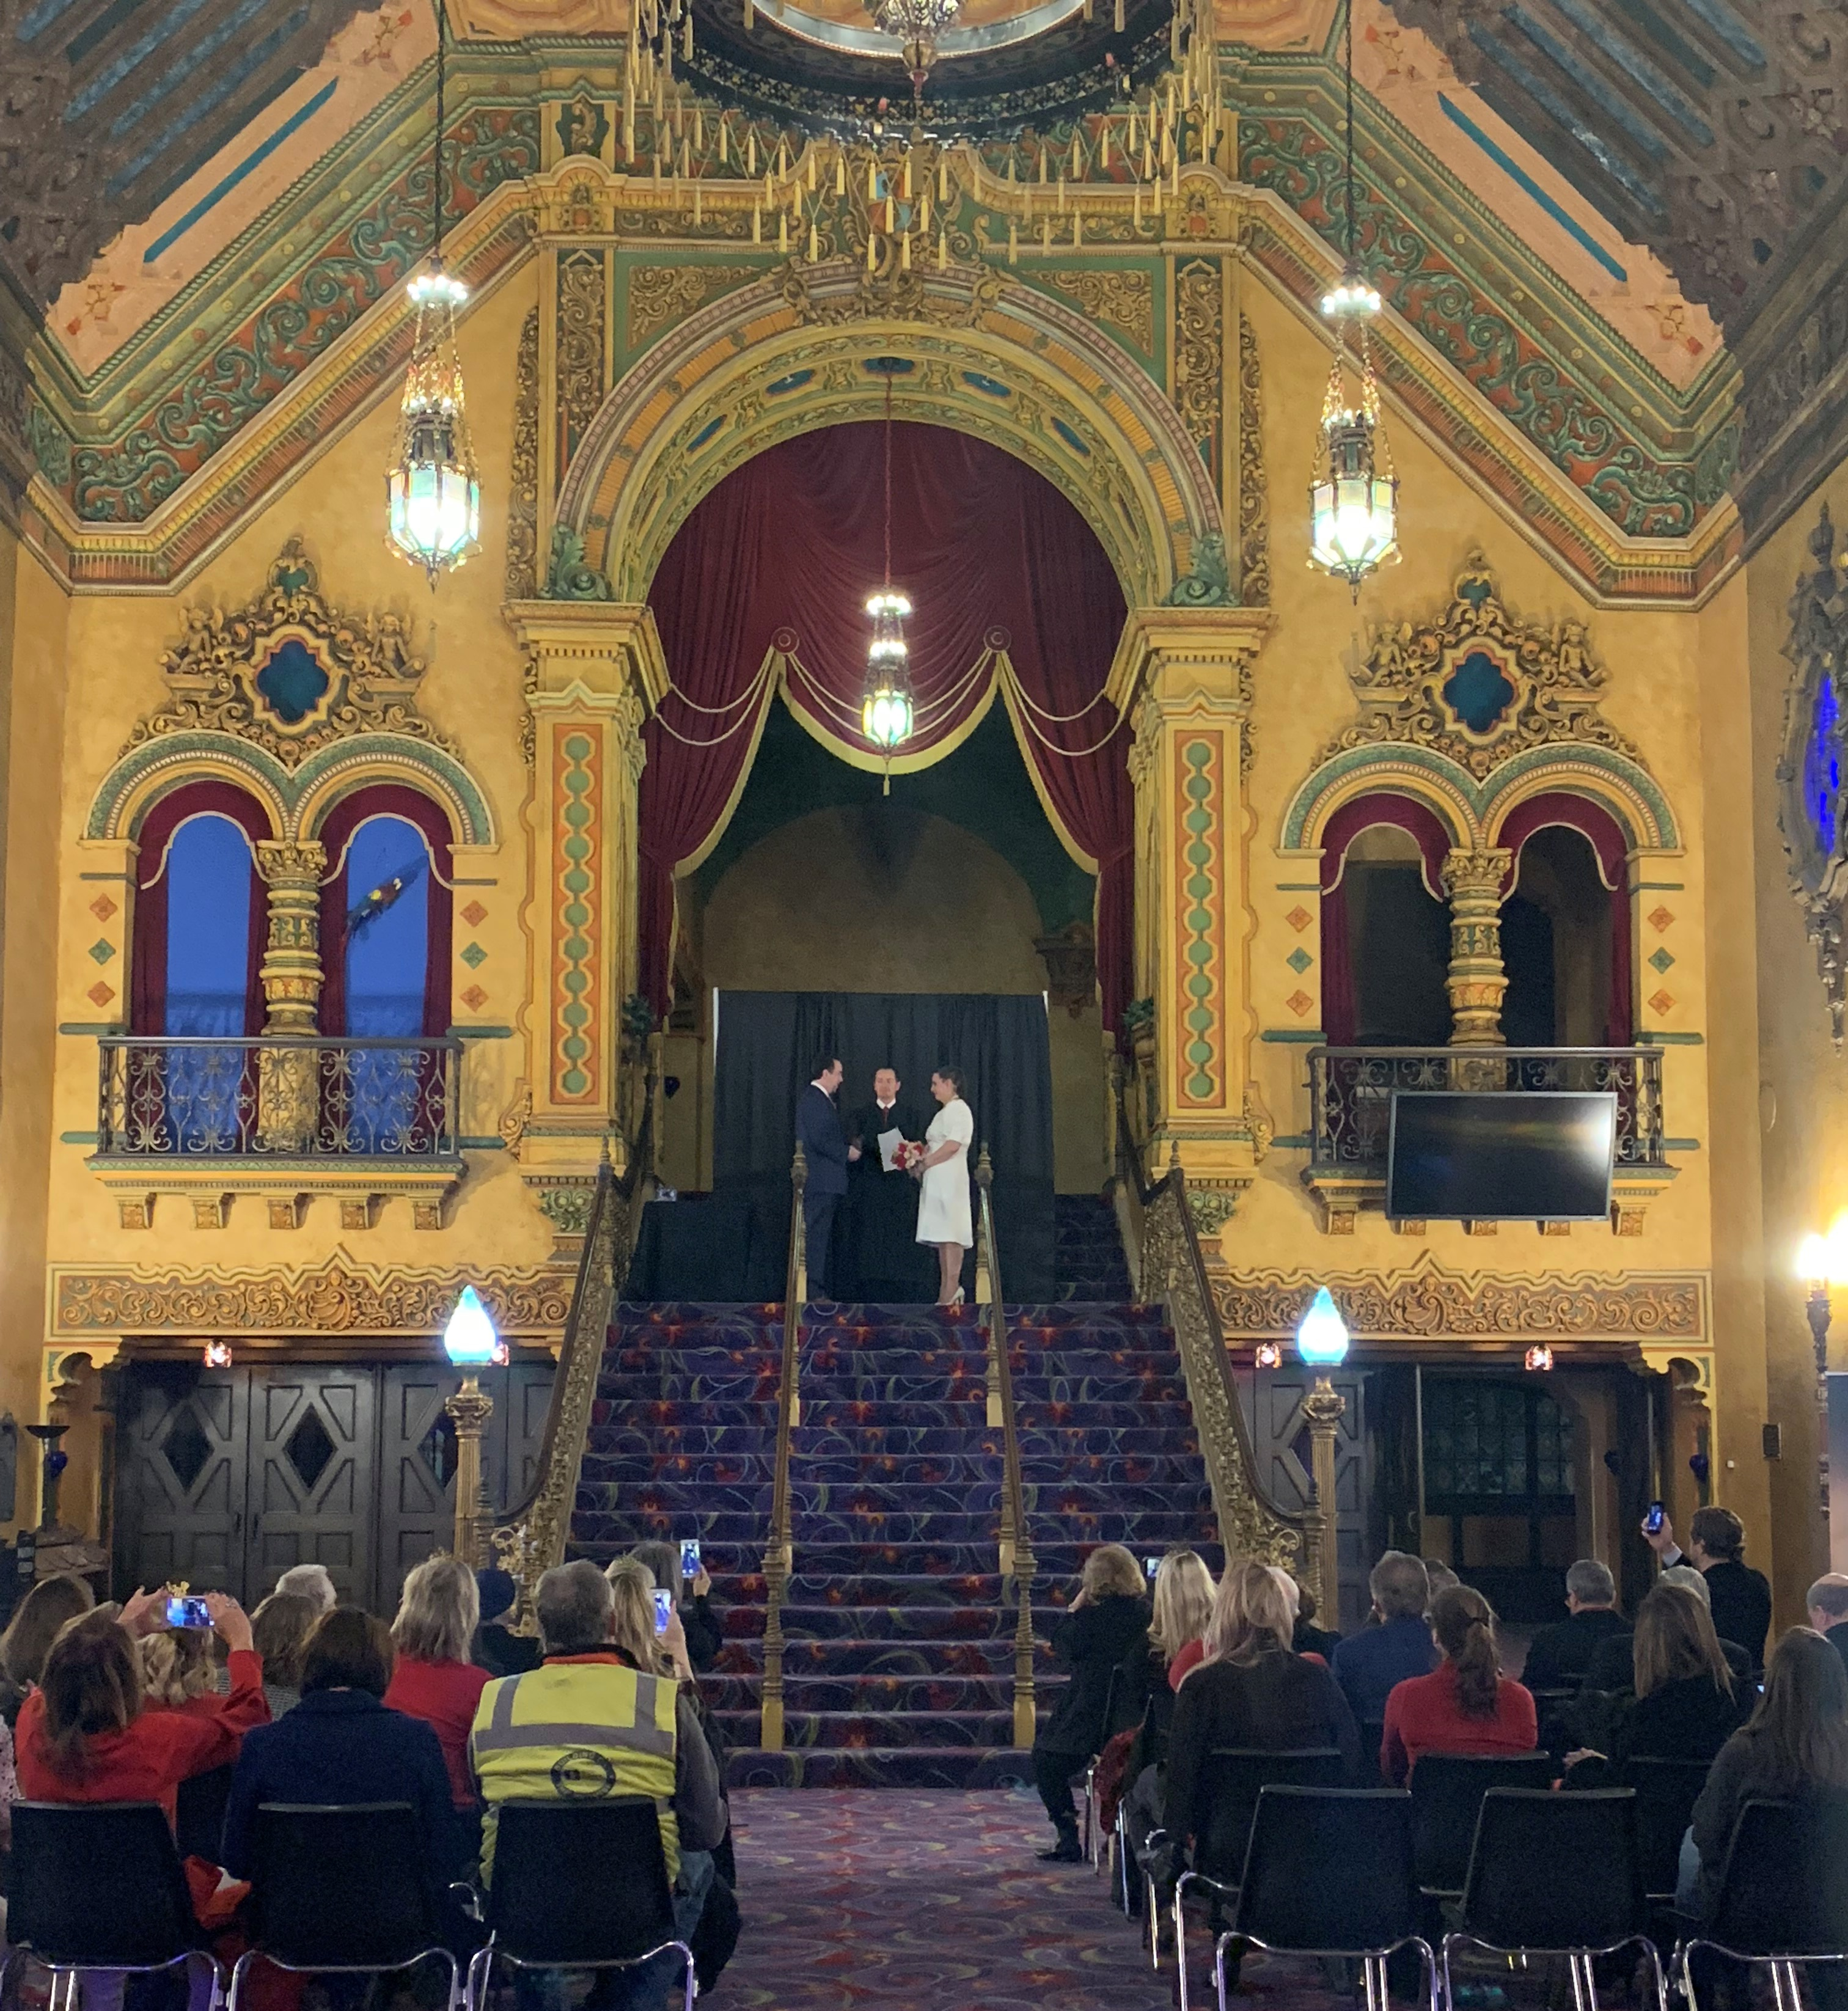 Mr and Mrs Tom and Tia Farmakidis were married at the Akron Civic Theatre on Valentine's Day 2019